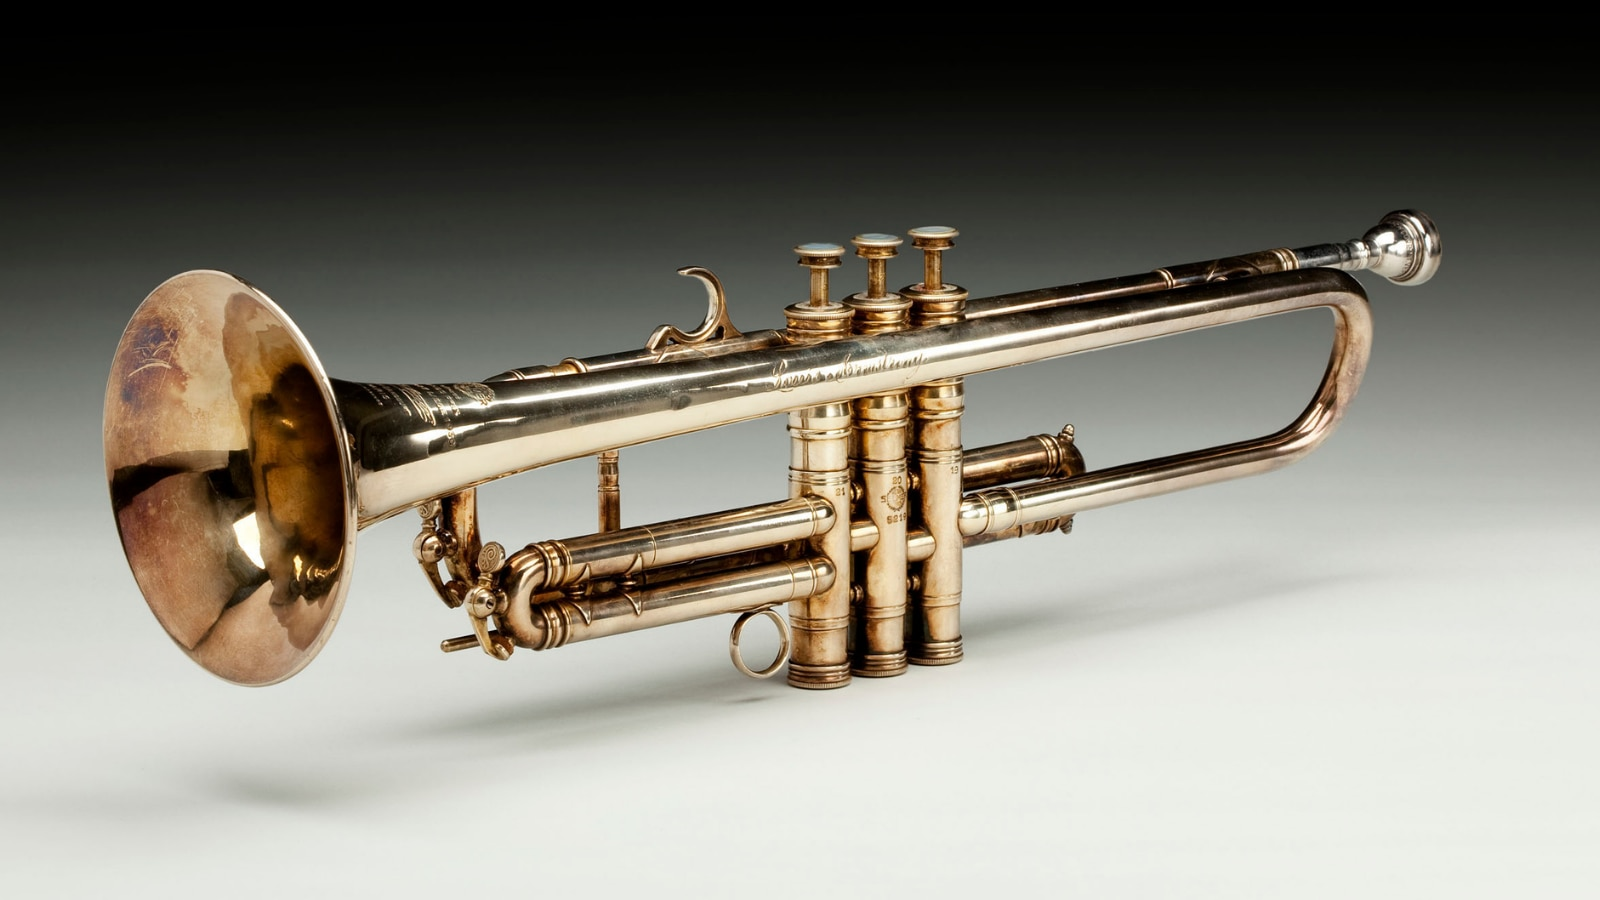 One-of-a-kind brass-and-gold trumpet owned and played by Louis Armstrong circa 1946, photographed on October 19, 2015. (Photo courtesy of the National Museum of African American History and Culture)